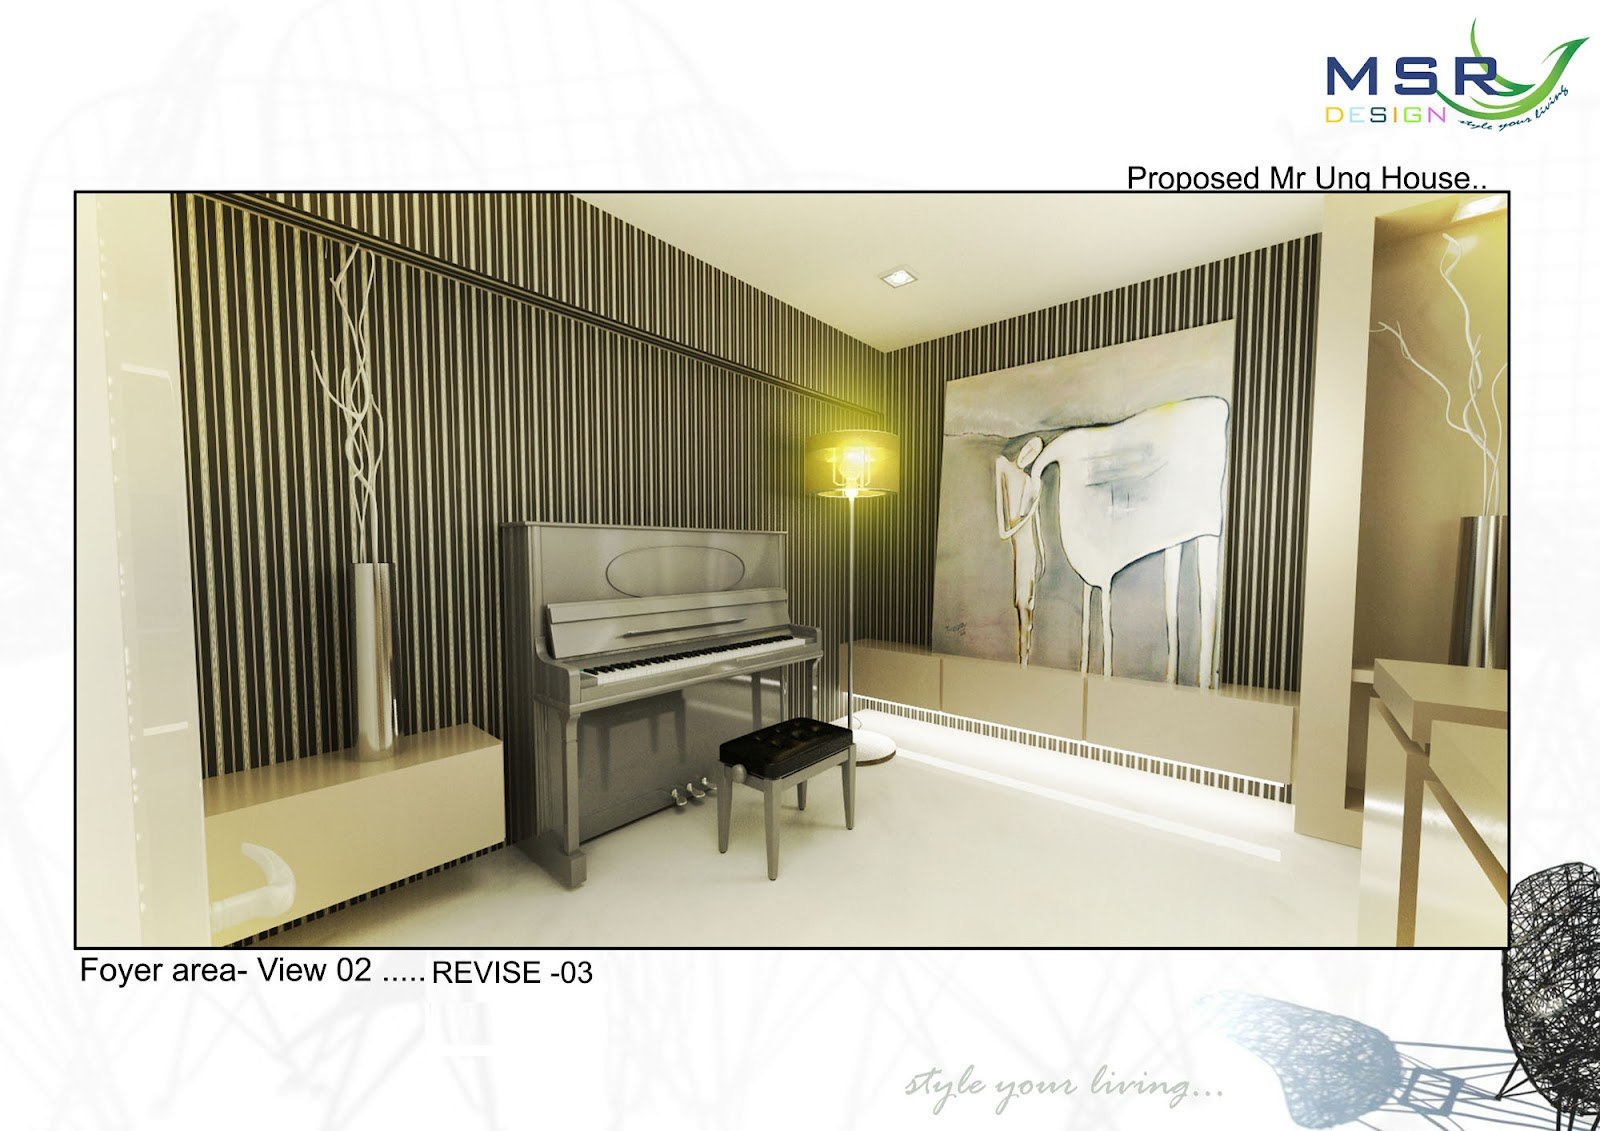 Mica interior design and construction foyer 3d for Foyer area interior